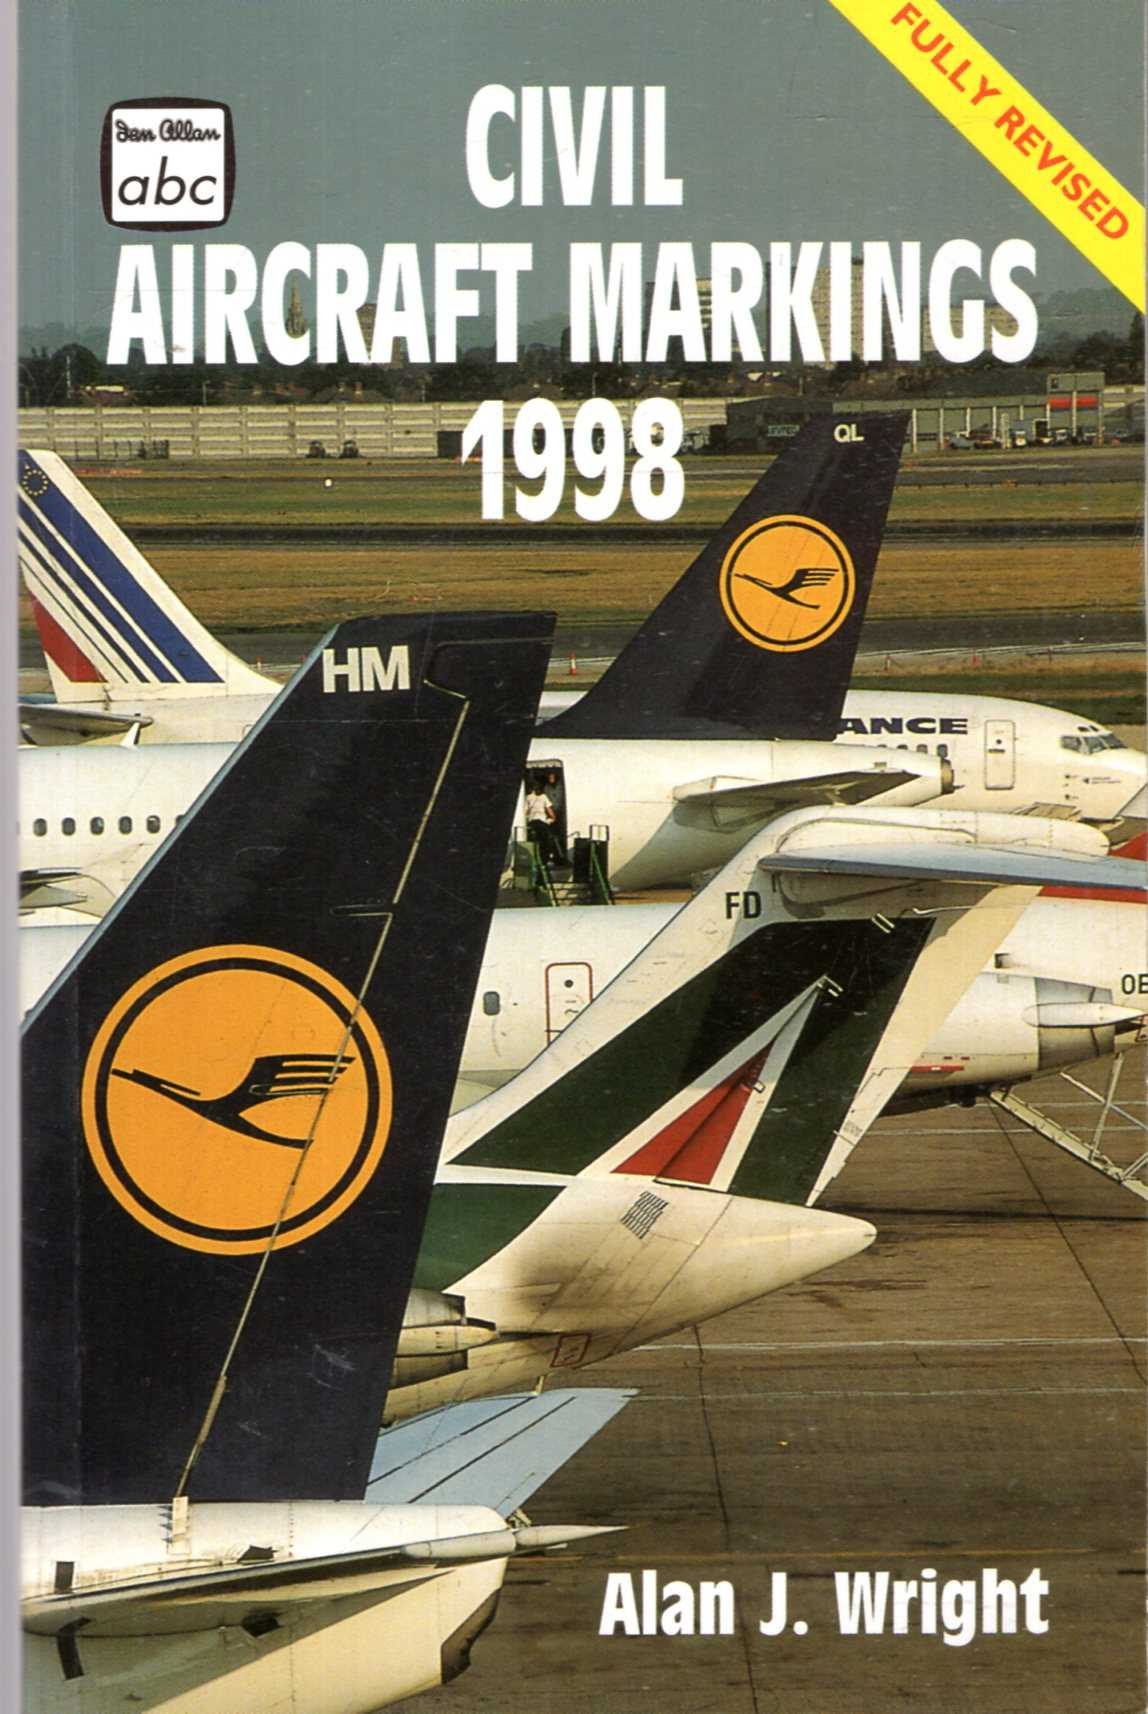 Image for Civil Aircraft Markings 1998